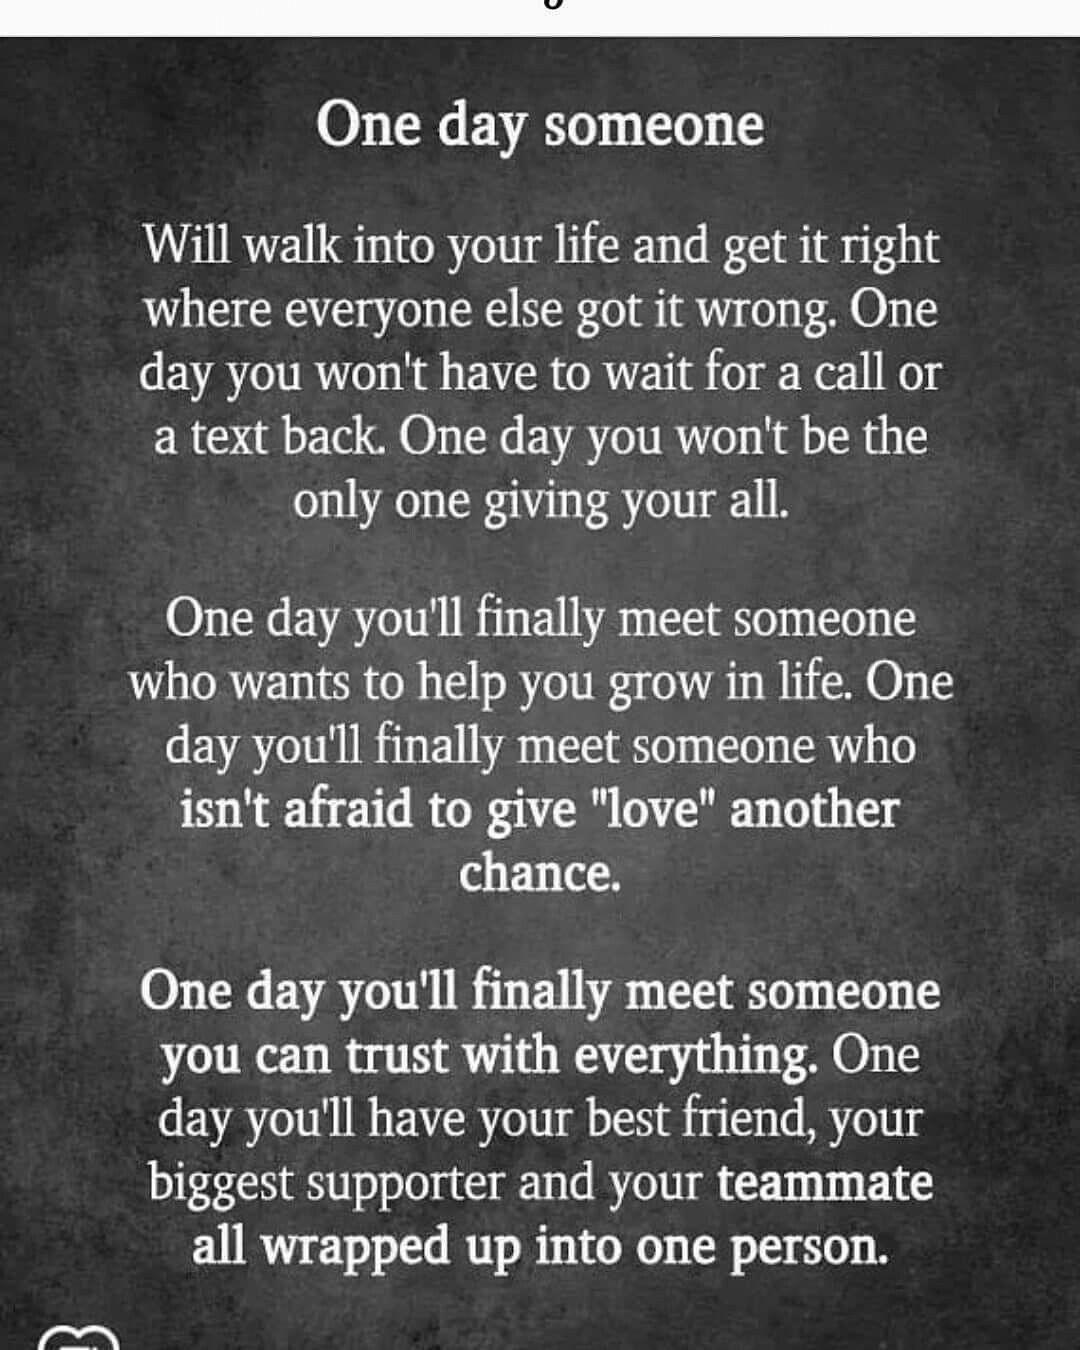 A Dose Of Love Advice And Perspective For Singles On Valentine S Day Finding Love Quotes True Love Quotes For Him Inspirational Quotes For Him